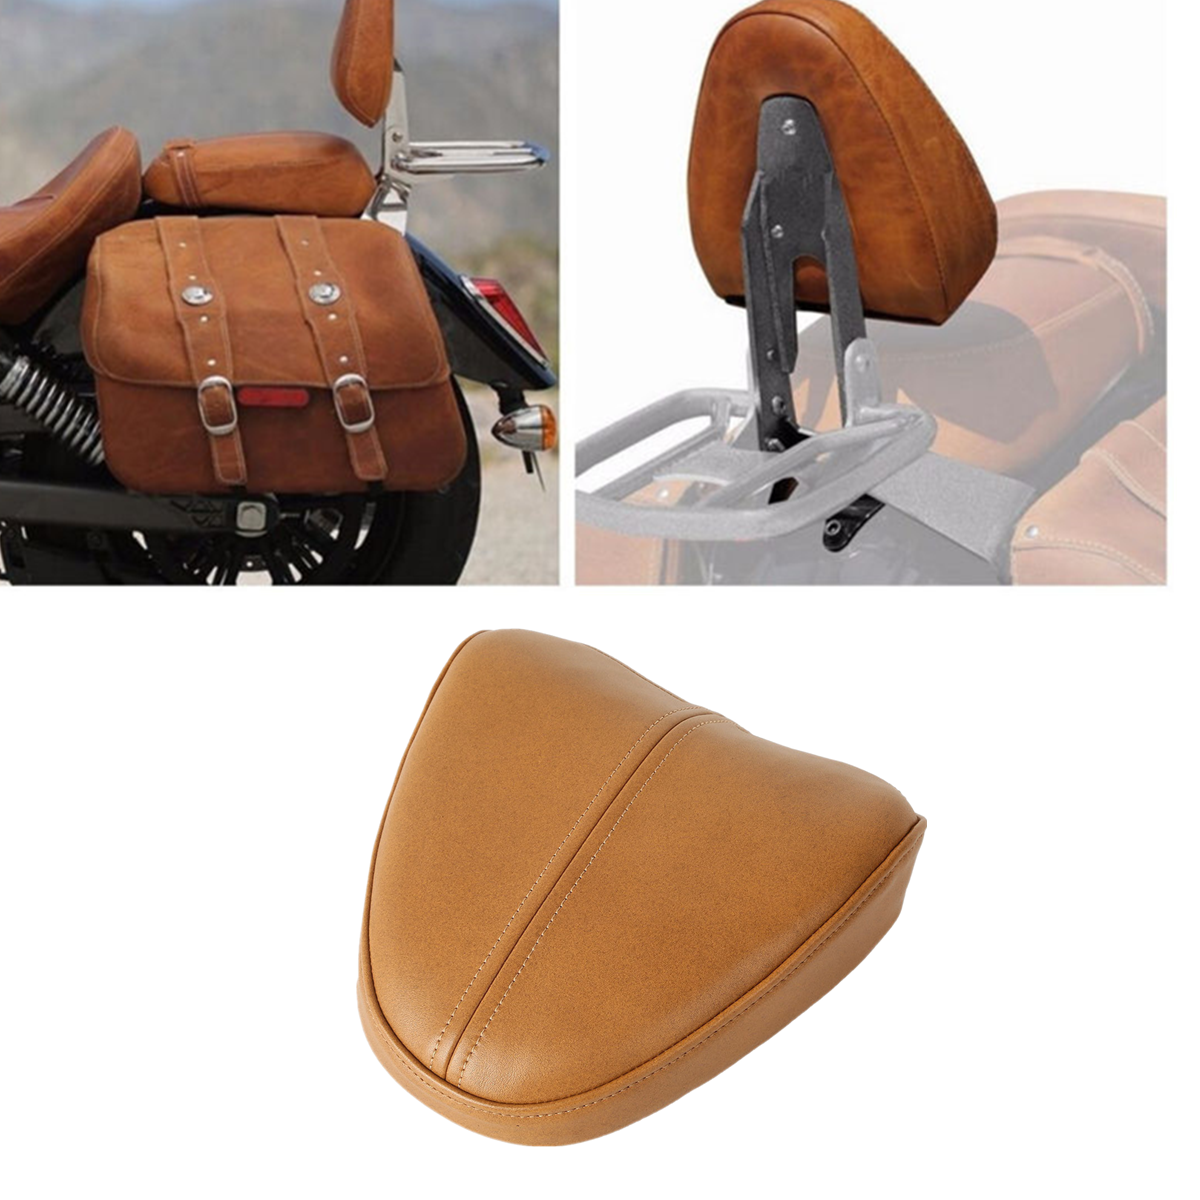 Desert Tan Passenger Sissy Bar Pad For Indian Scout Sixity 16-18 Scout 15-18 17 Bobber 2018 Replace 2880827-05